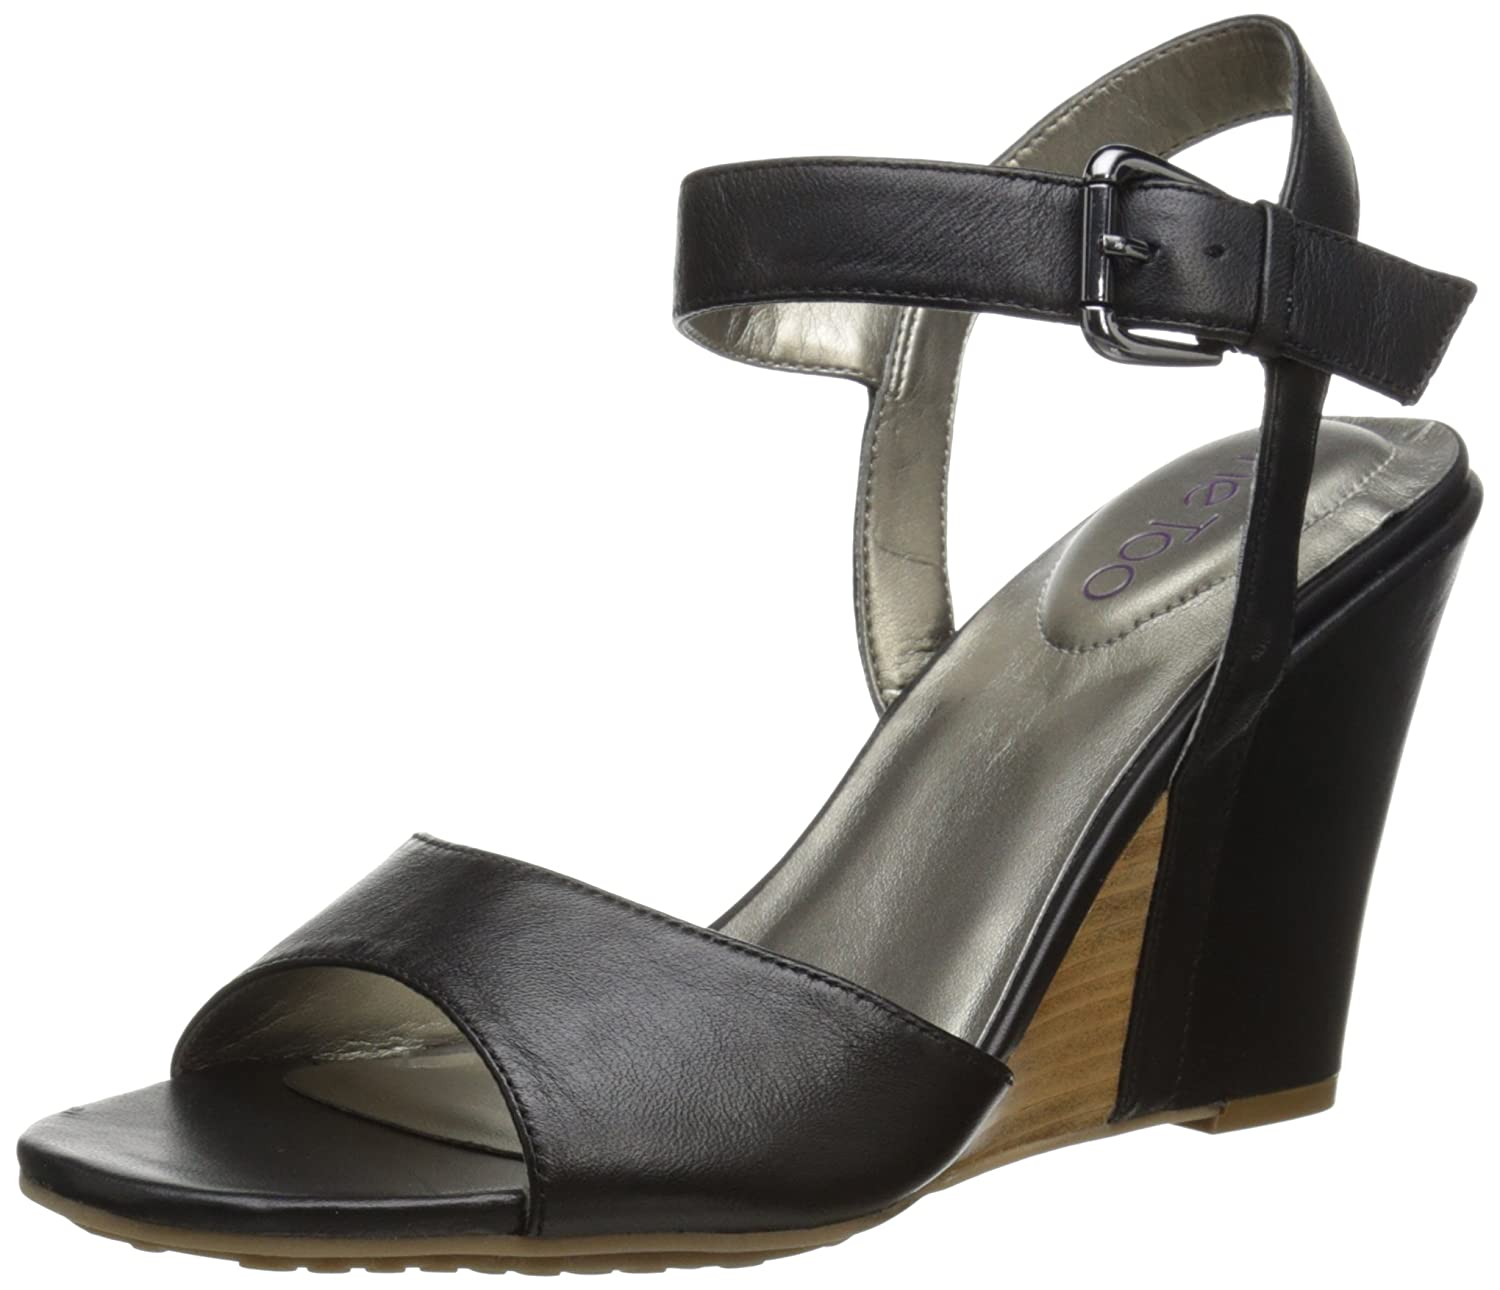 Me Too Women's Lucie Dress Sandal B00QWQDSRI 7.5 B(M) US|Black Nappa